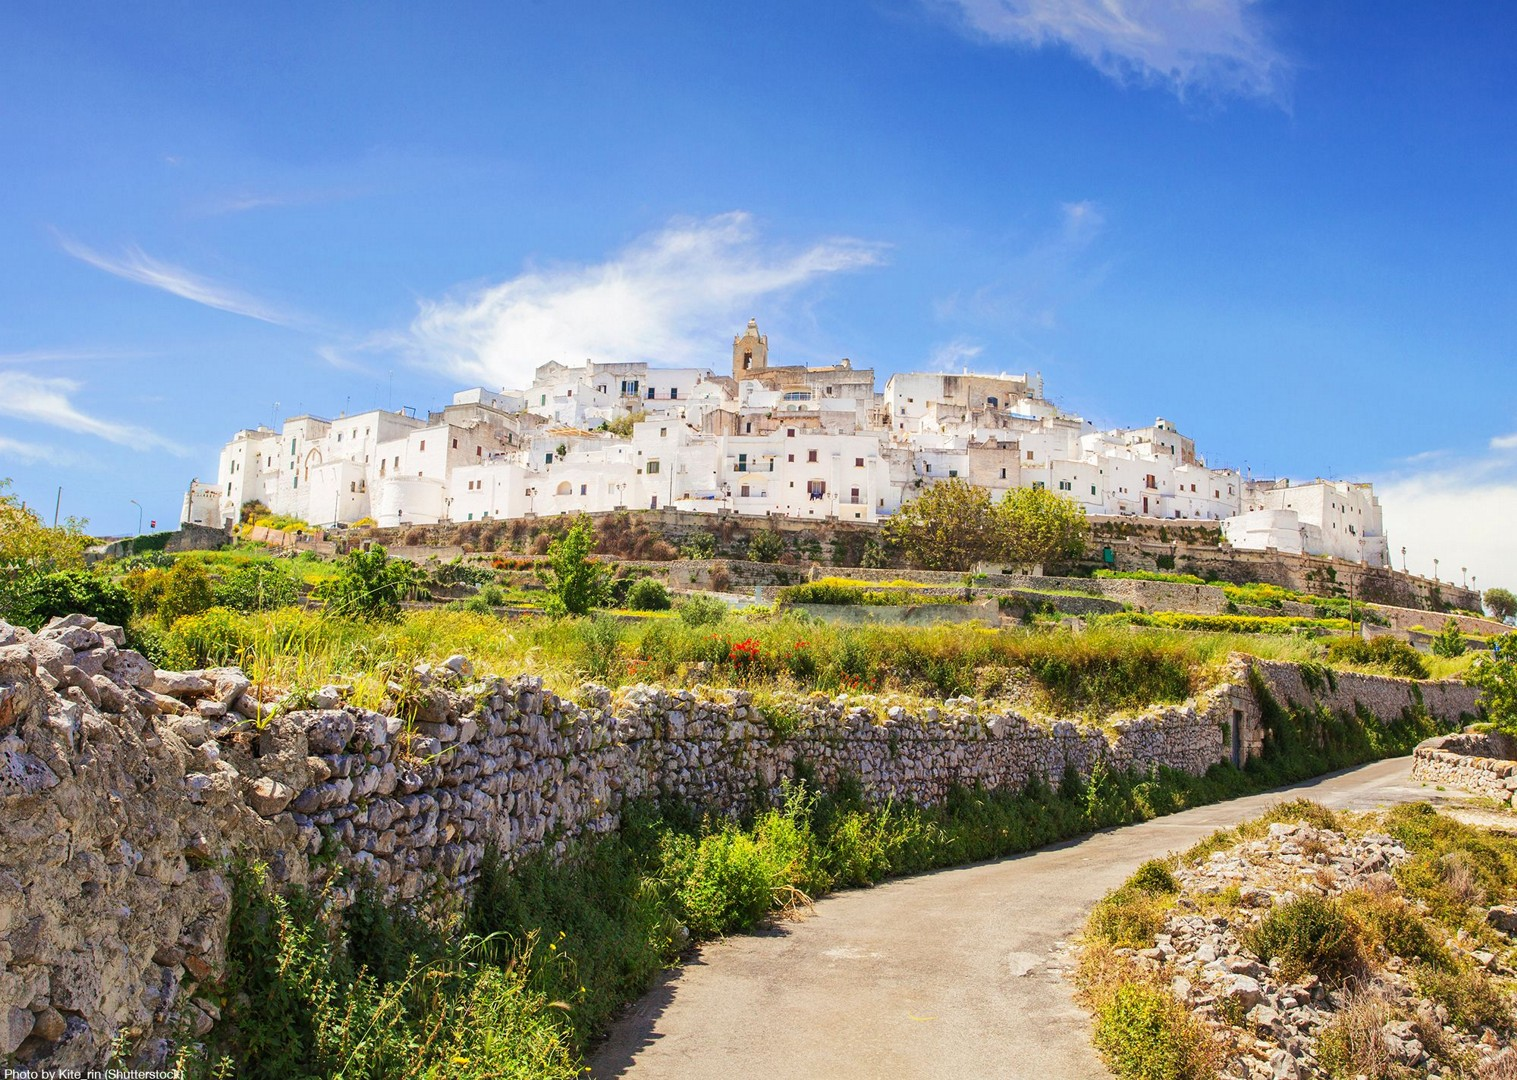 shutterstock_204778273  By Kite_rin.jpg - Italy - Puglia - Self-Guided Leisure Cycling Holiday - Italia Leisure and Family Cycling